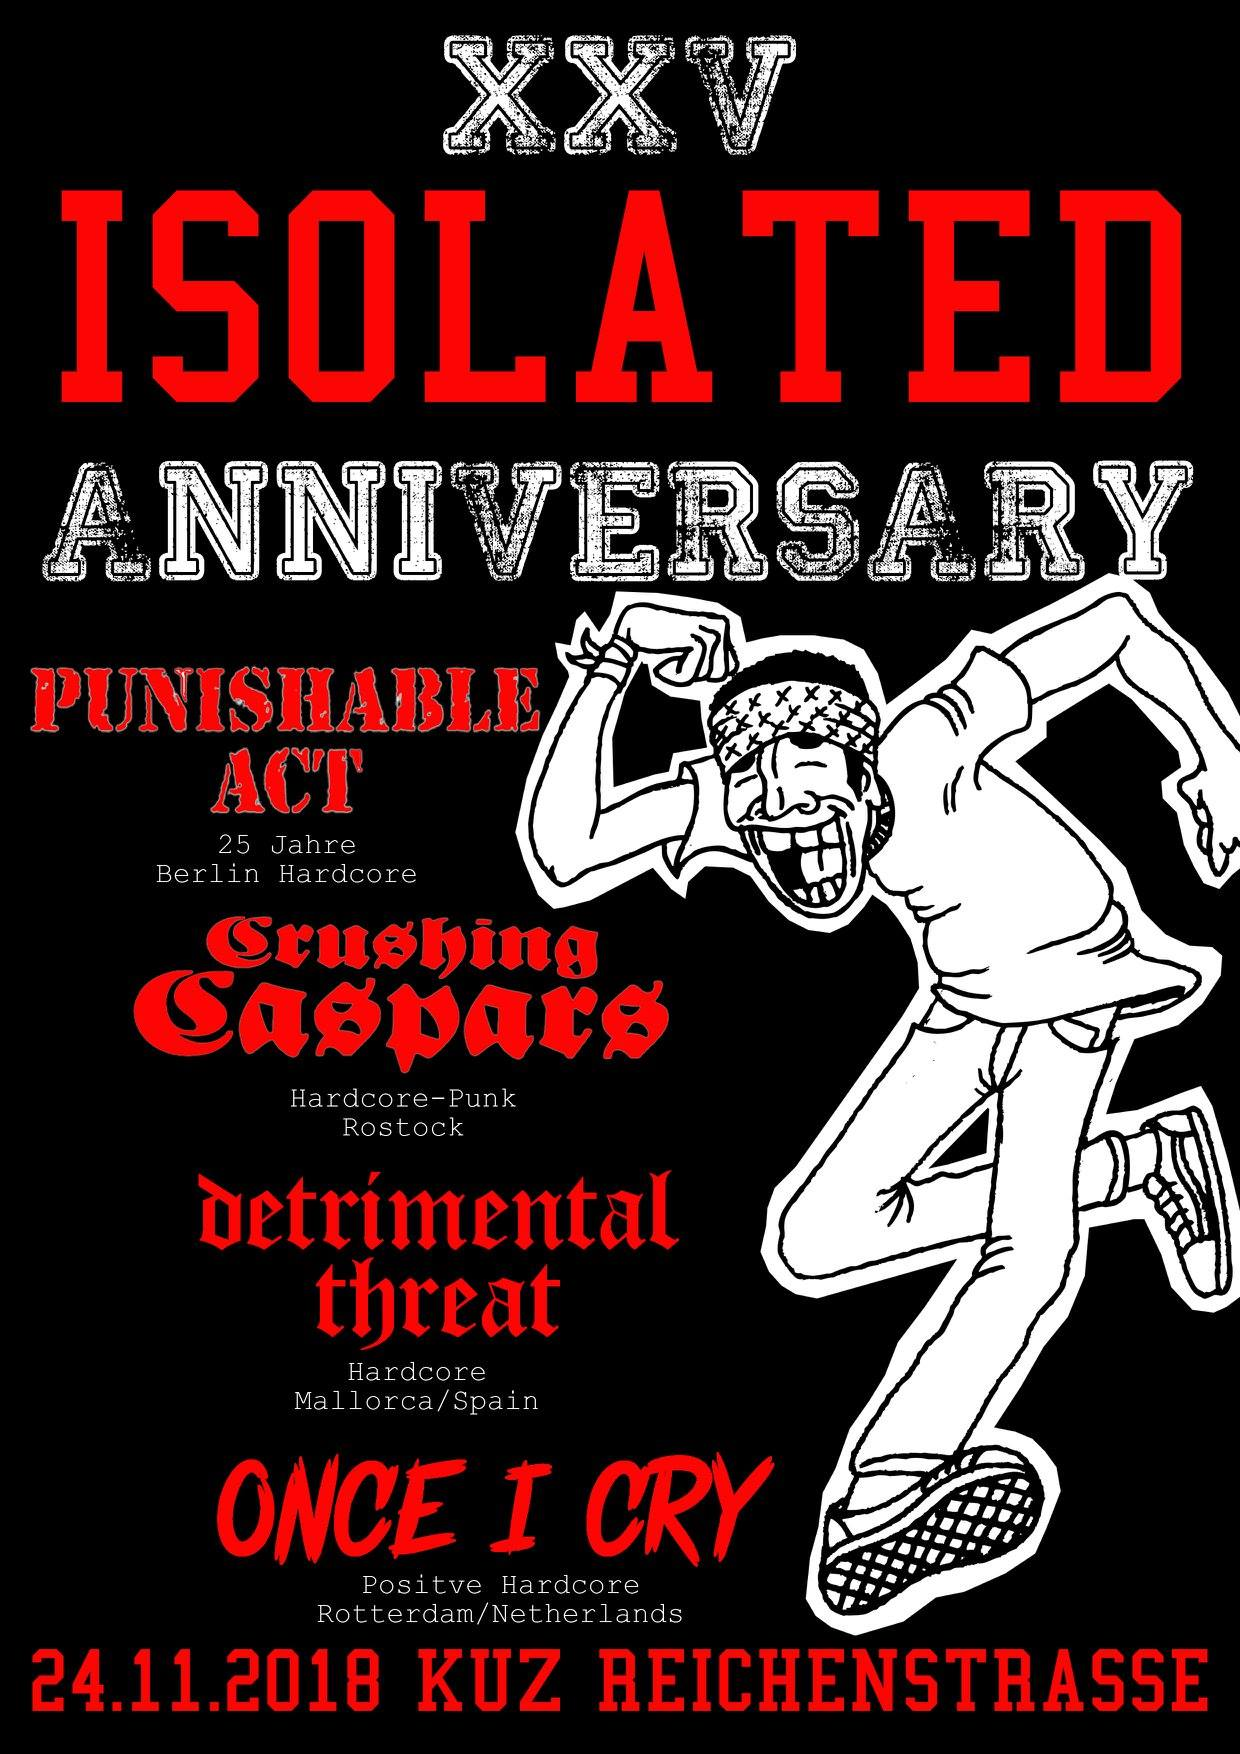 25 JAHRE ISOLATED!